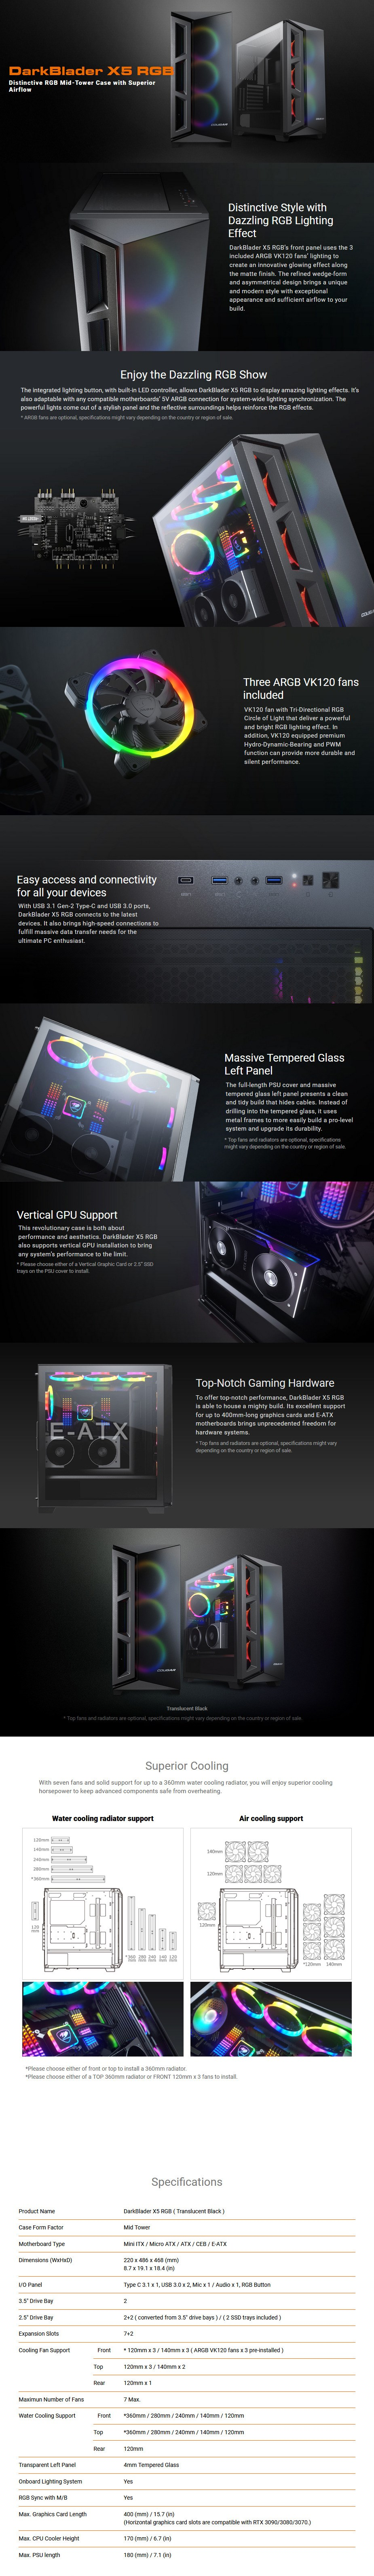 Cougar DarkBlader X5 RGB Tempered Glass Mid-Tower E-ATX Case - Overview 1